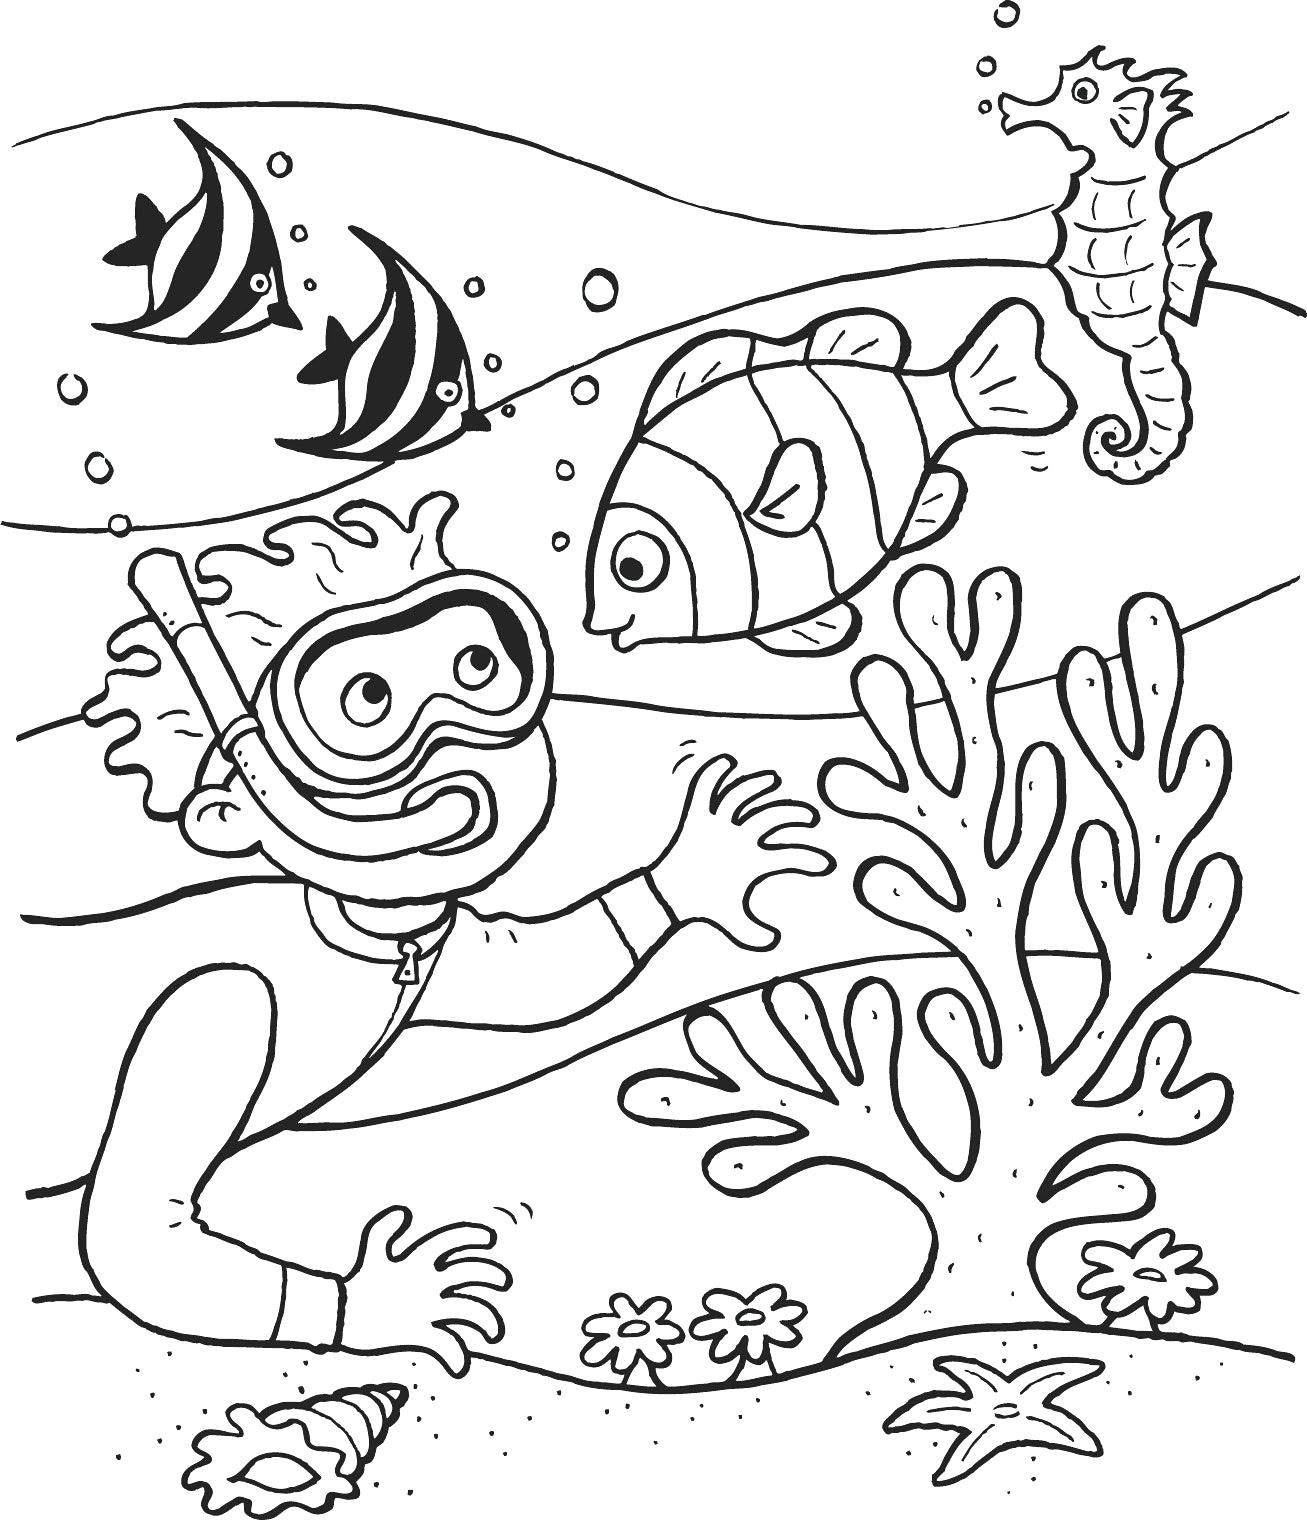 Image result for colouring pictures of underwater sea